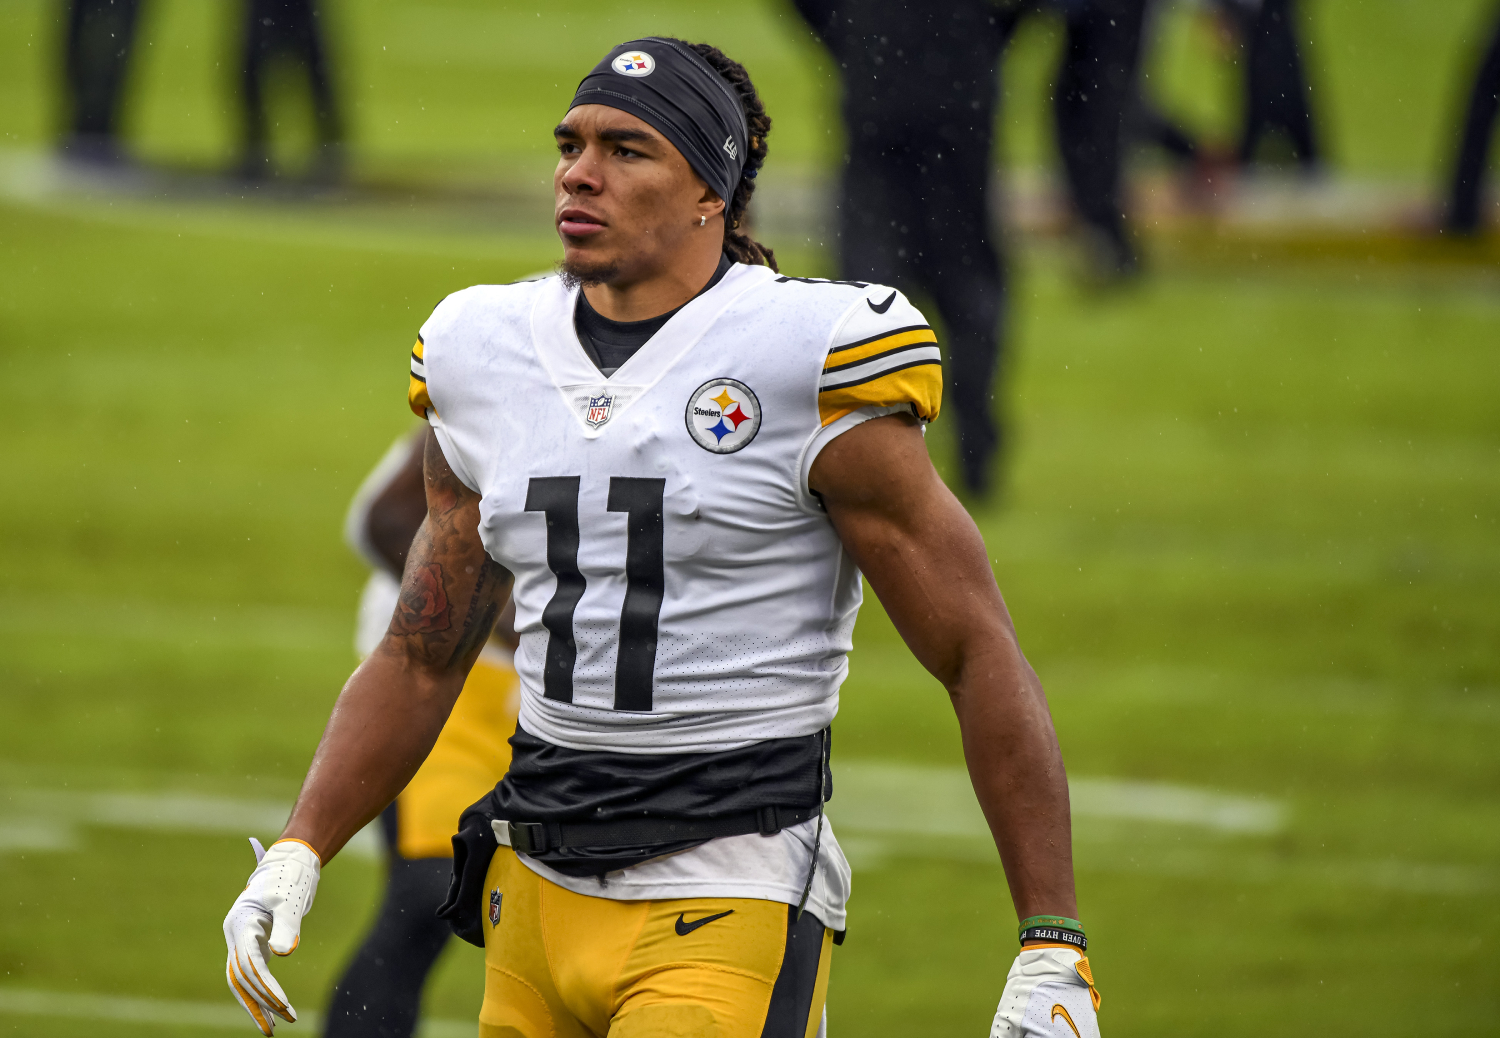 Chase Claypool has become a star for the Steelers. However, he just potentially got his former Notre Dame teammate Chris Finke fired.